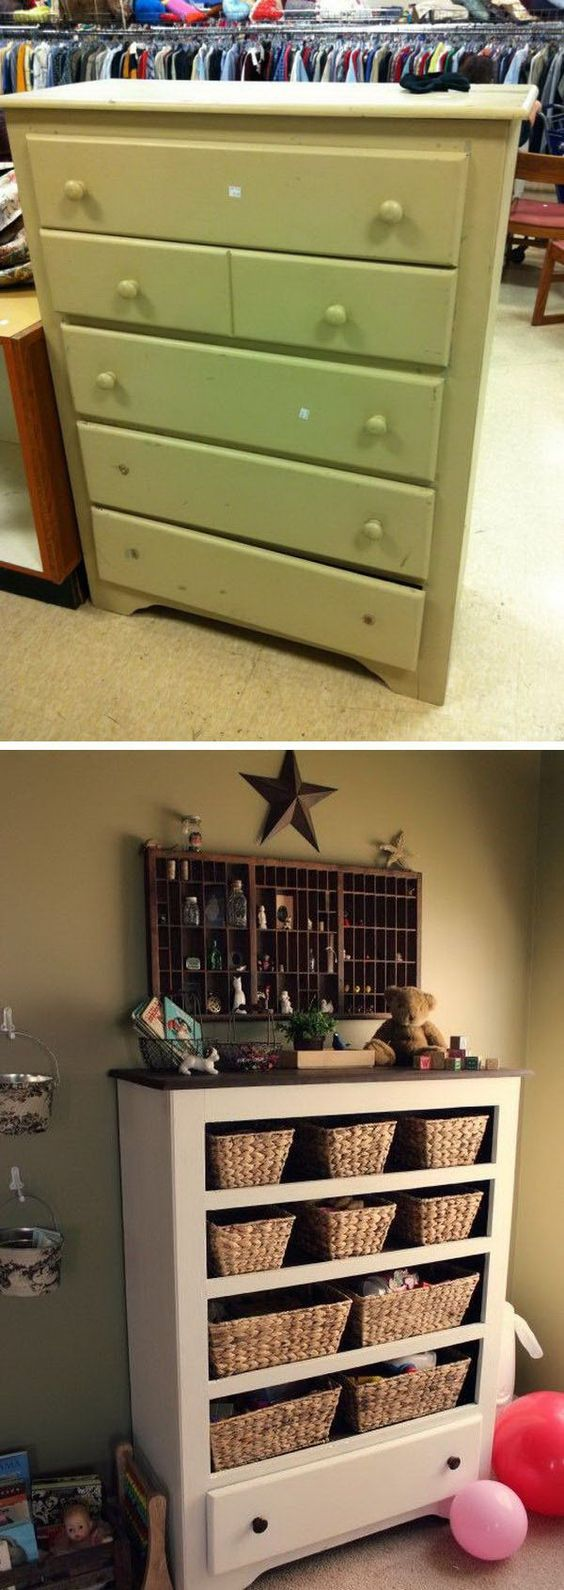 Turn a 9.50 Thrift Store Drawer into Funny Functional